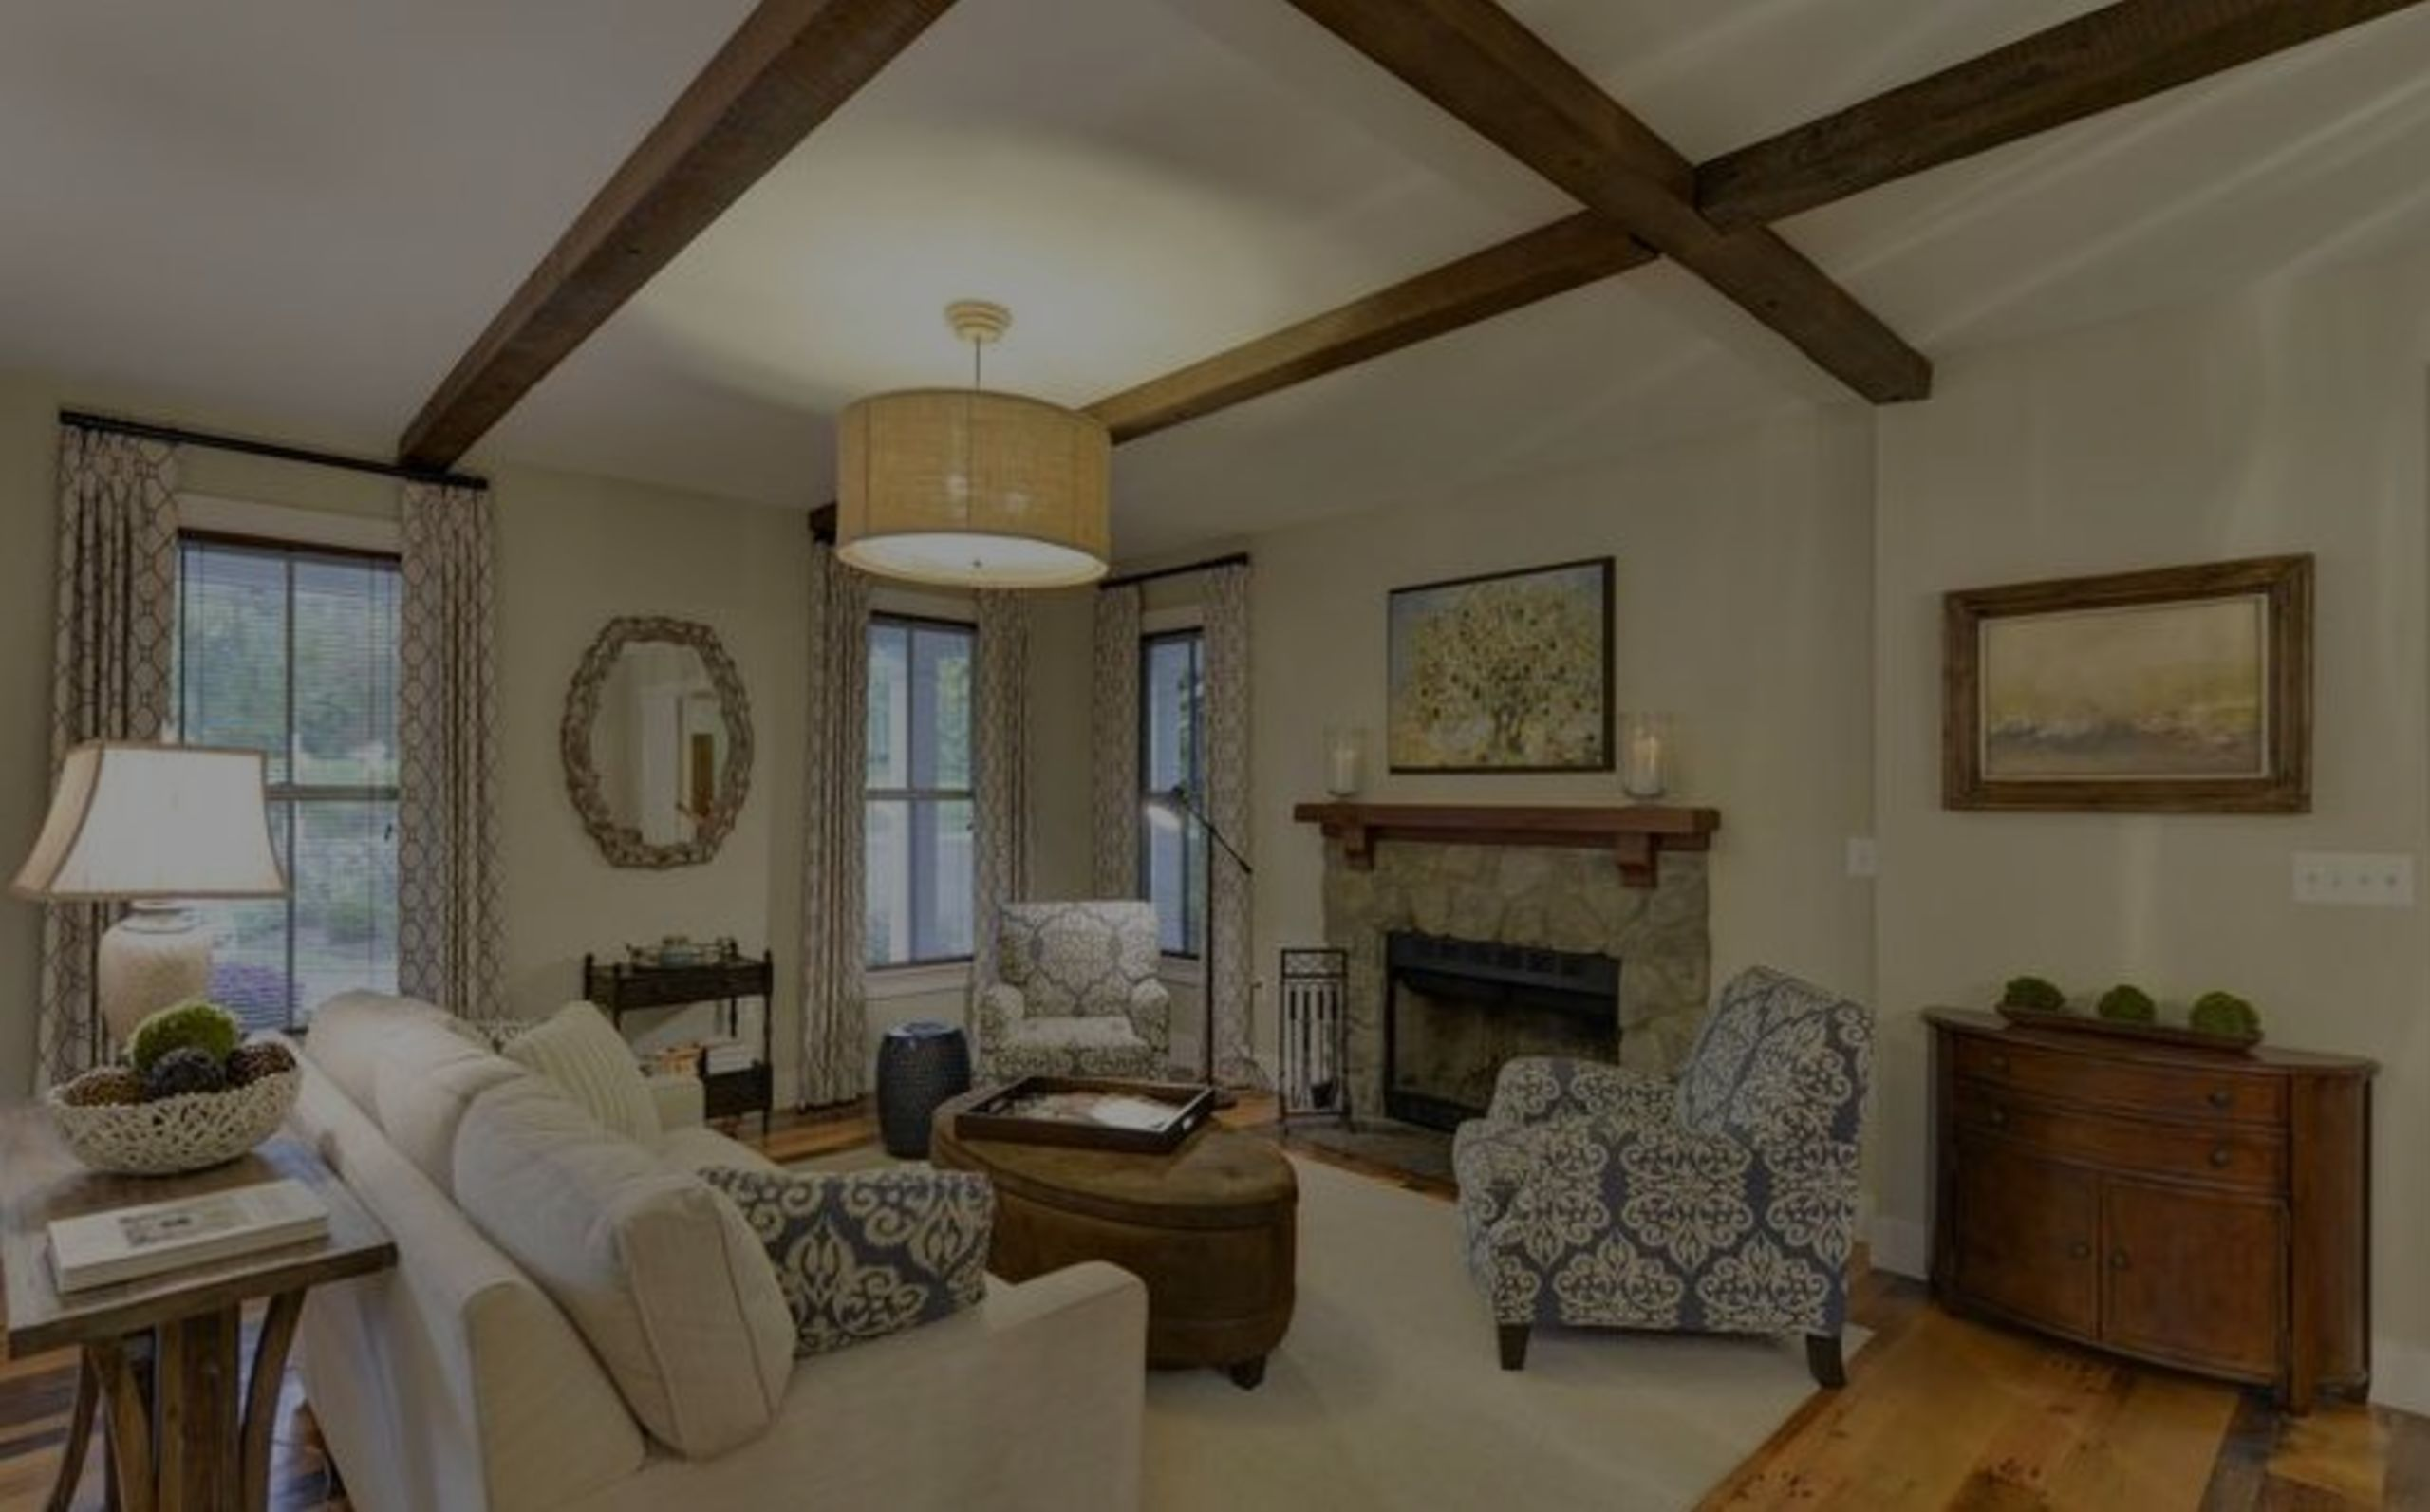 Just Listed – Historic Home with Event Space, Chip + Joanna Main Street Home, & More!